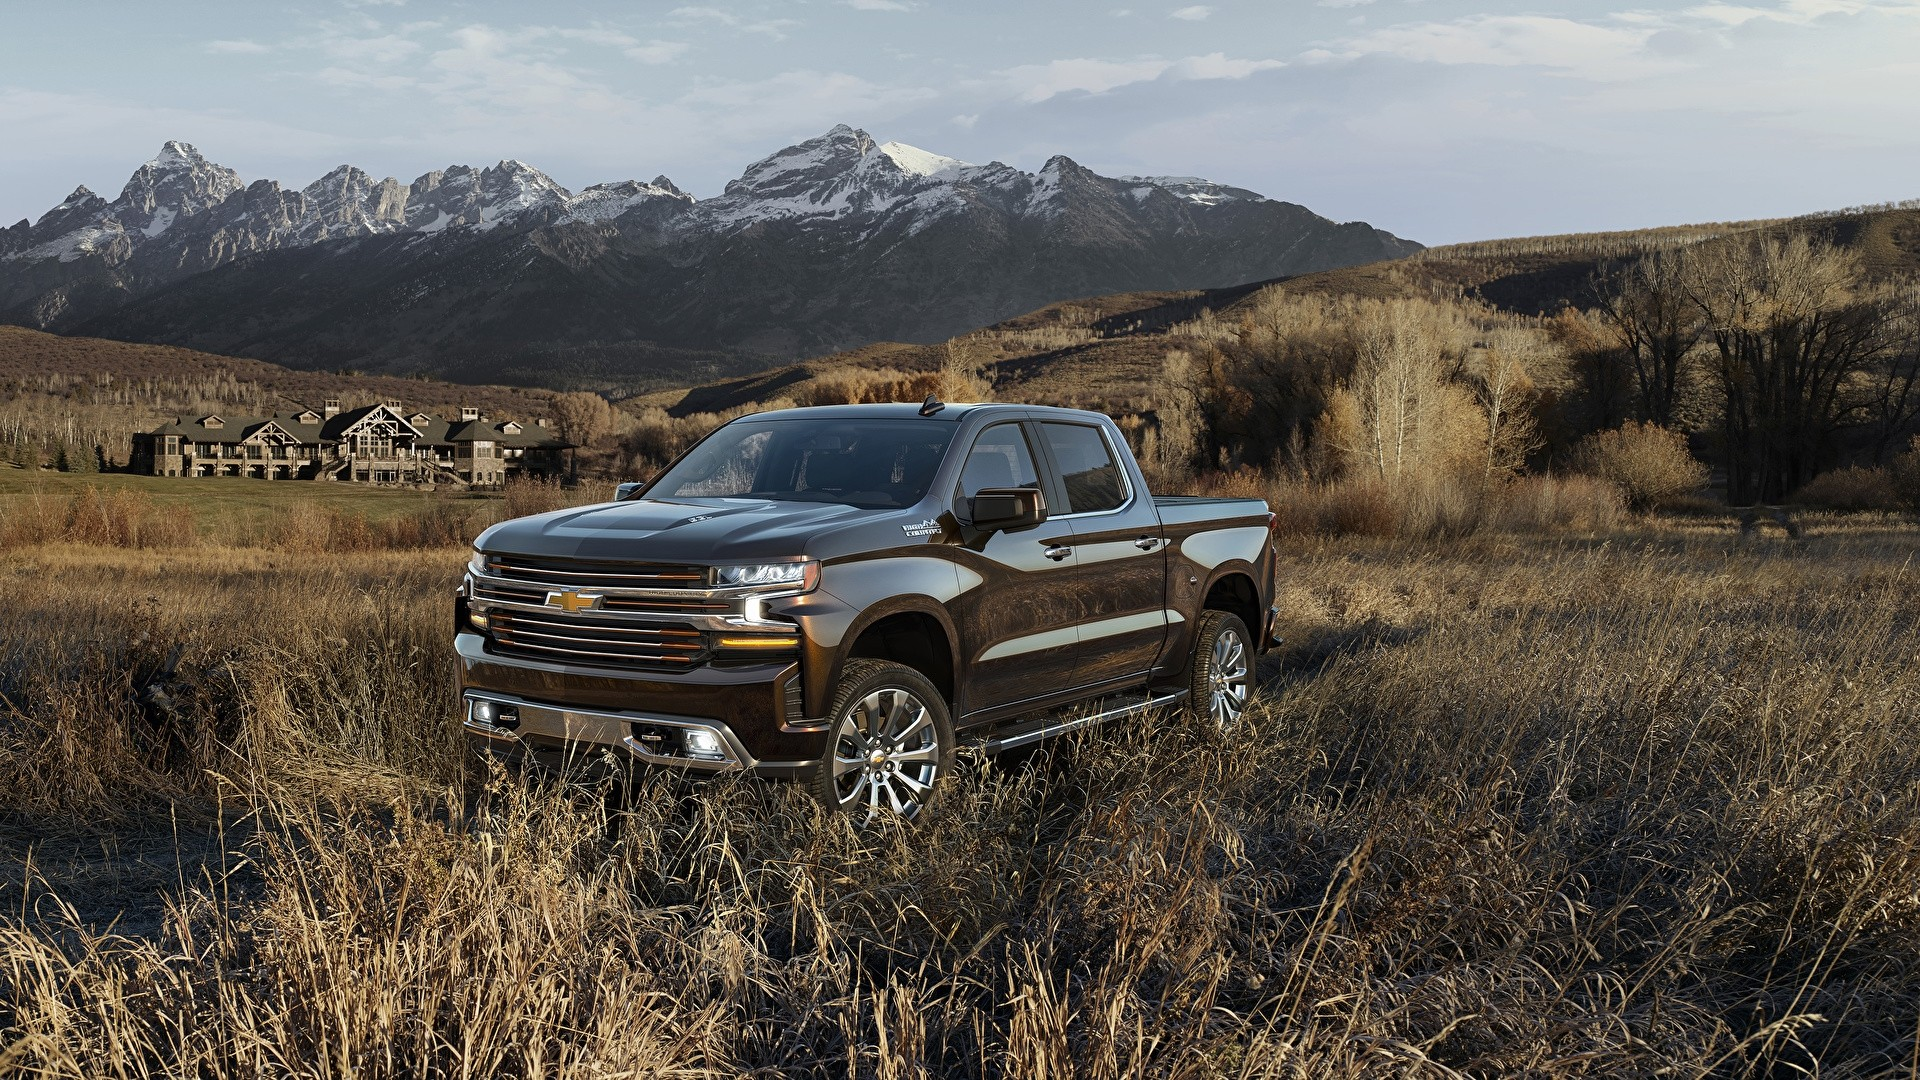 Silverado wallpaper download